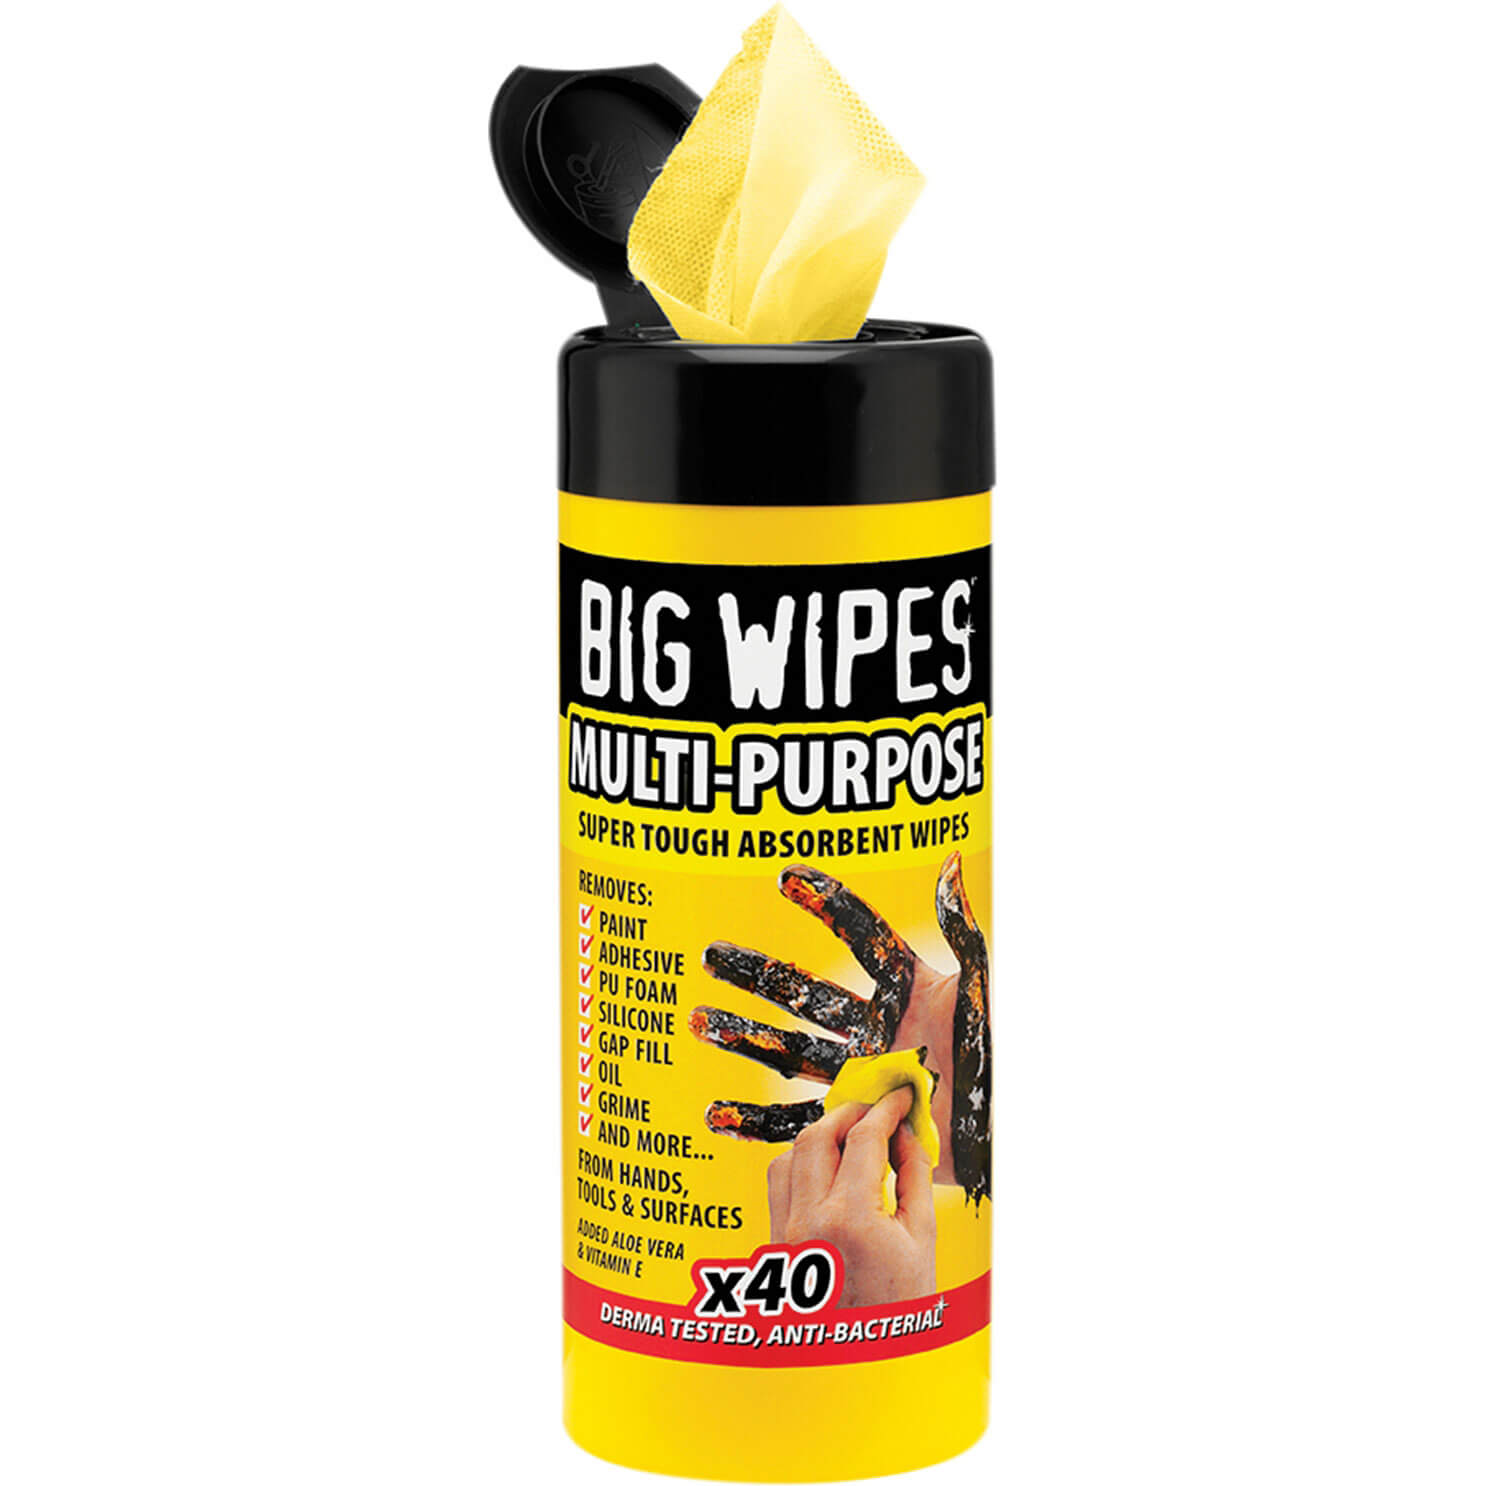 Big Wipes Industrial Cleaning Wipes Tub of 40 Wipes